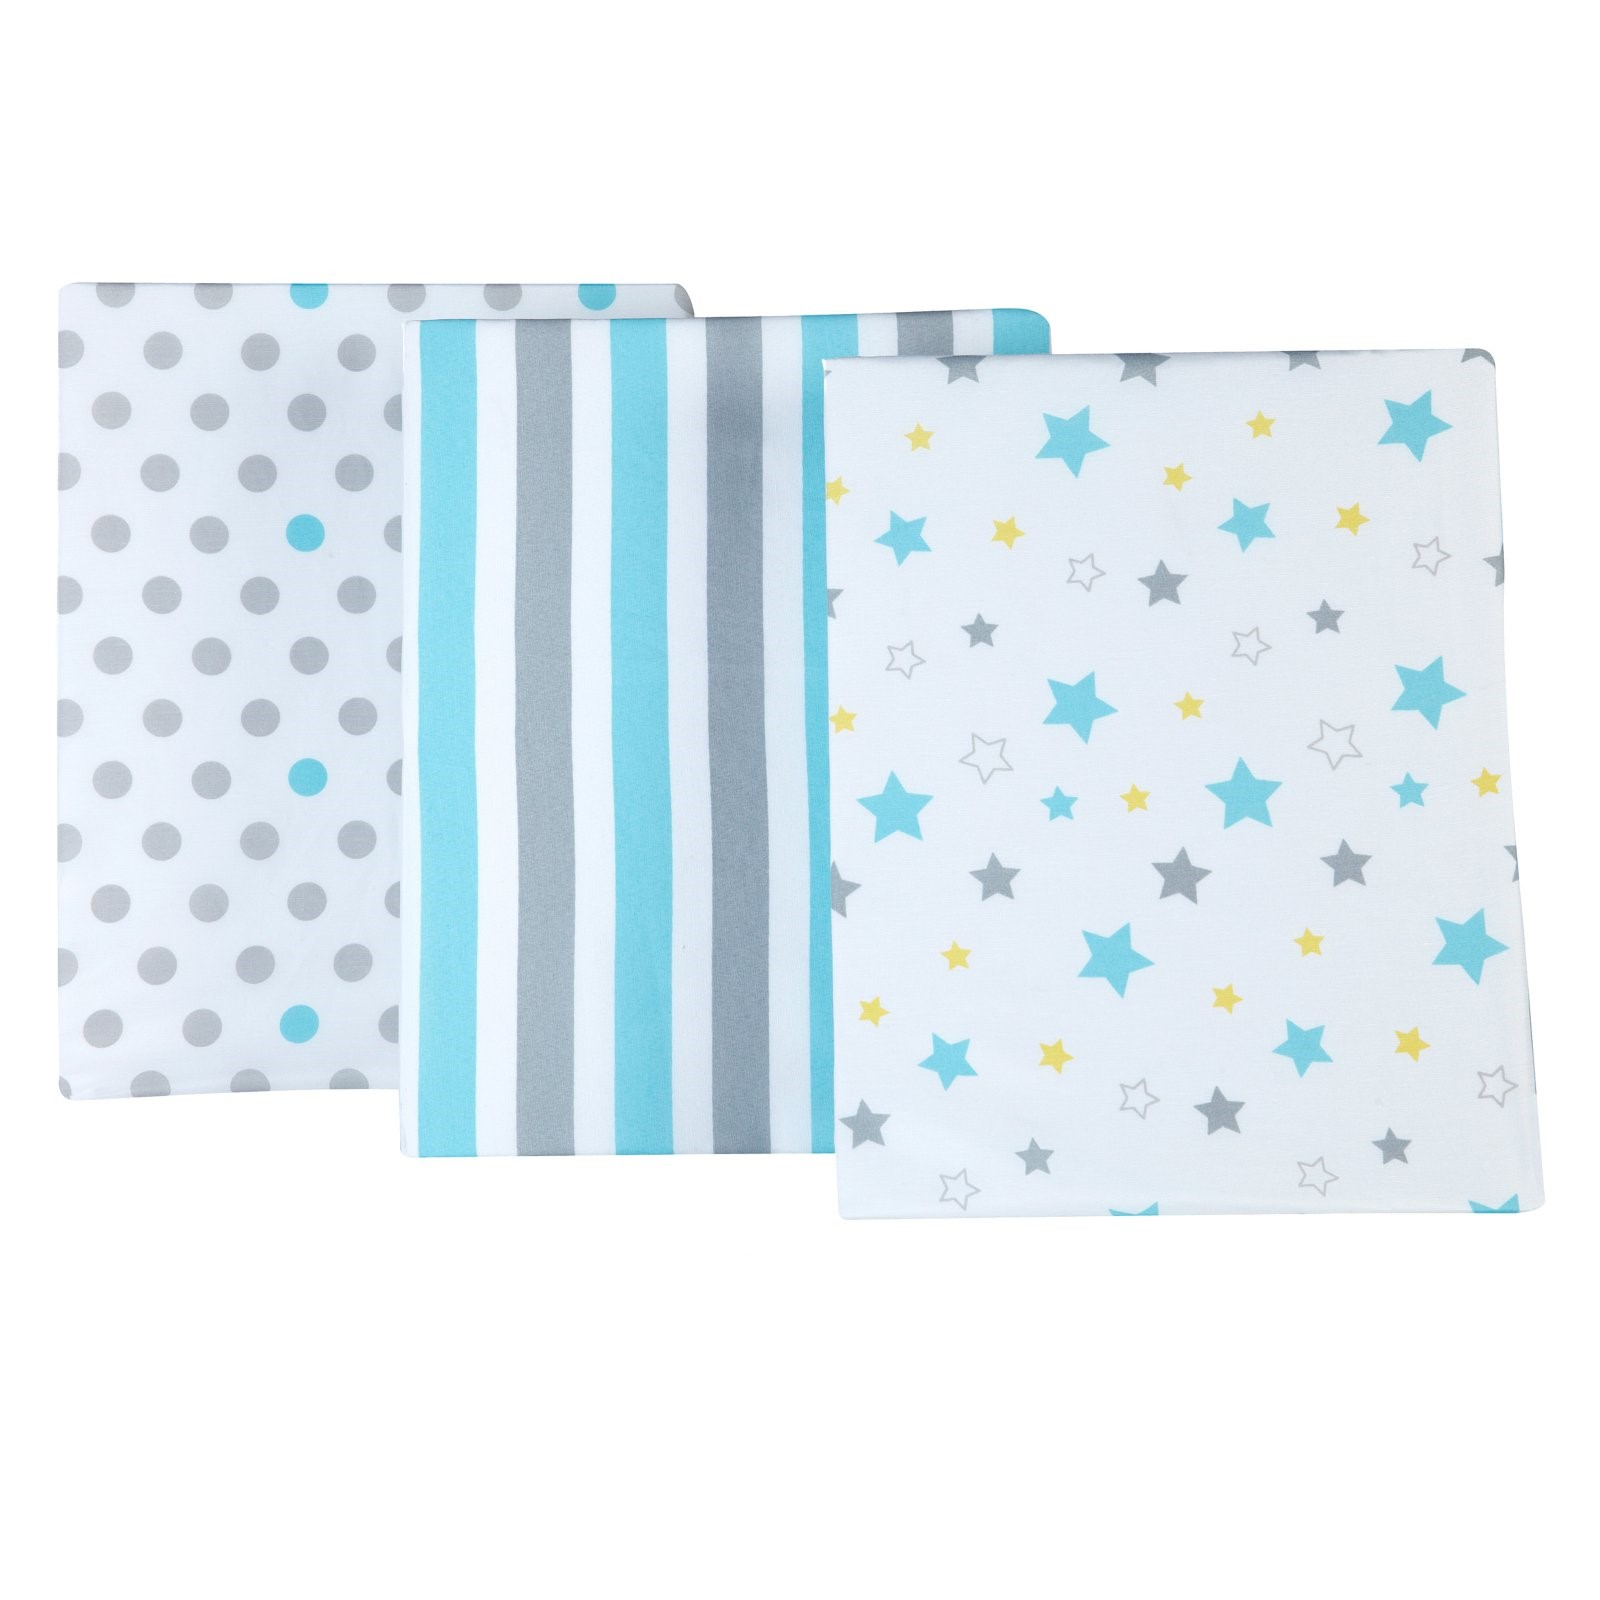 Twinkle Twinkle Crib Sheet - Set of 3 by NoJo